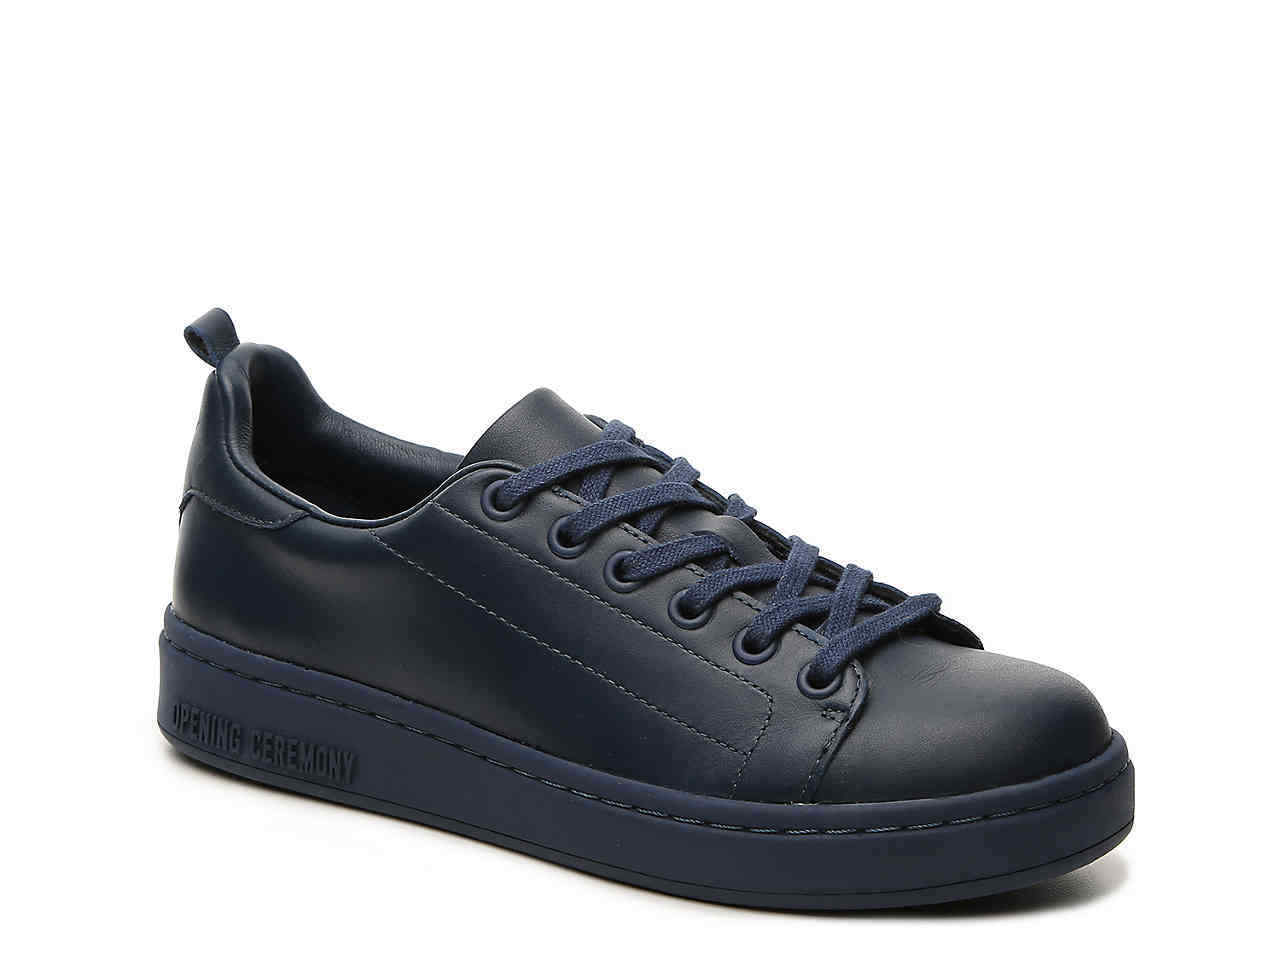 229 NWT OPENING CEREMONY blueL Low Top lace-Up LEATHER SNEAKERS Sz 5 NAVY blueE